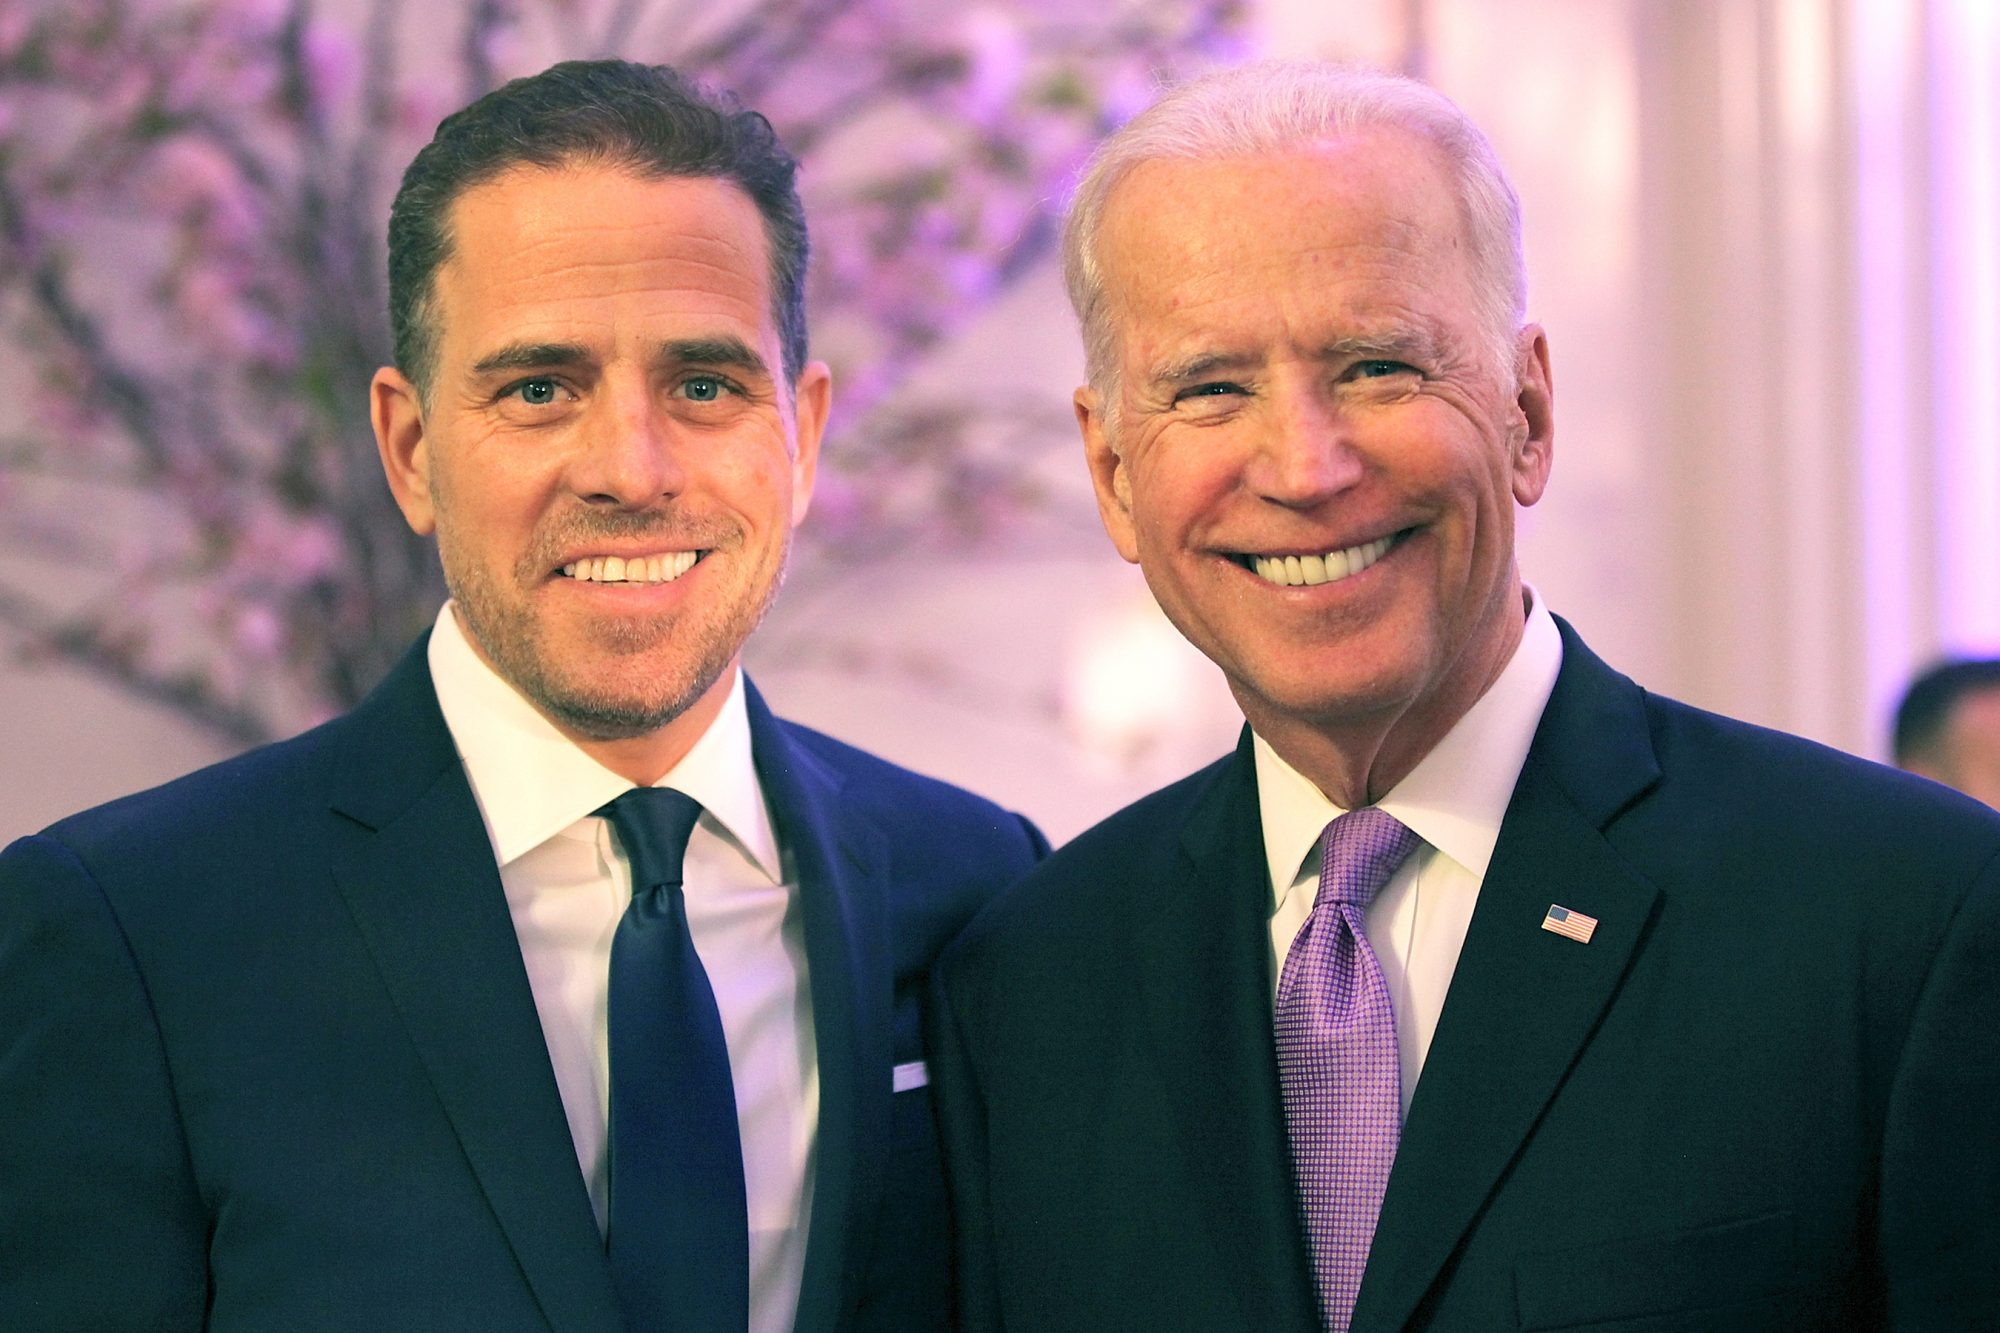 Joe Biden Confronted Son Hunter About Addiction at His Apartment During Vice Presidency: 'You Need Help'